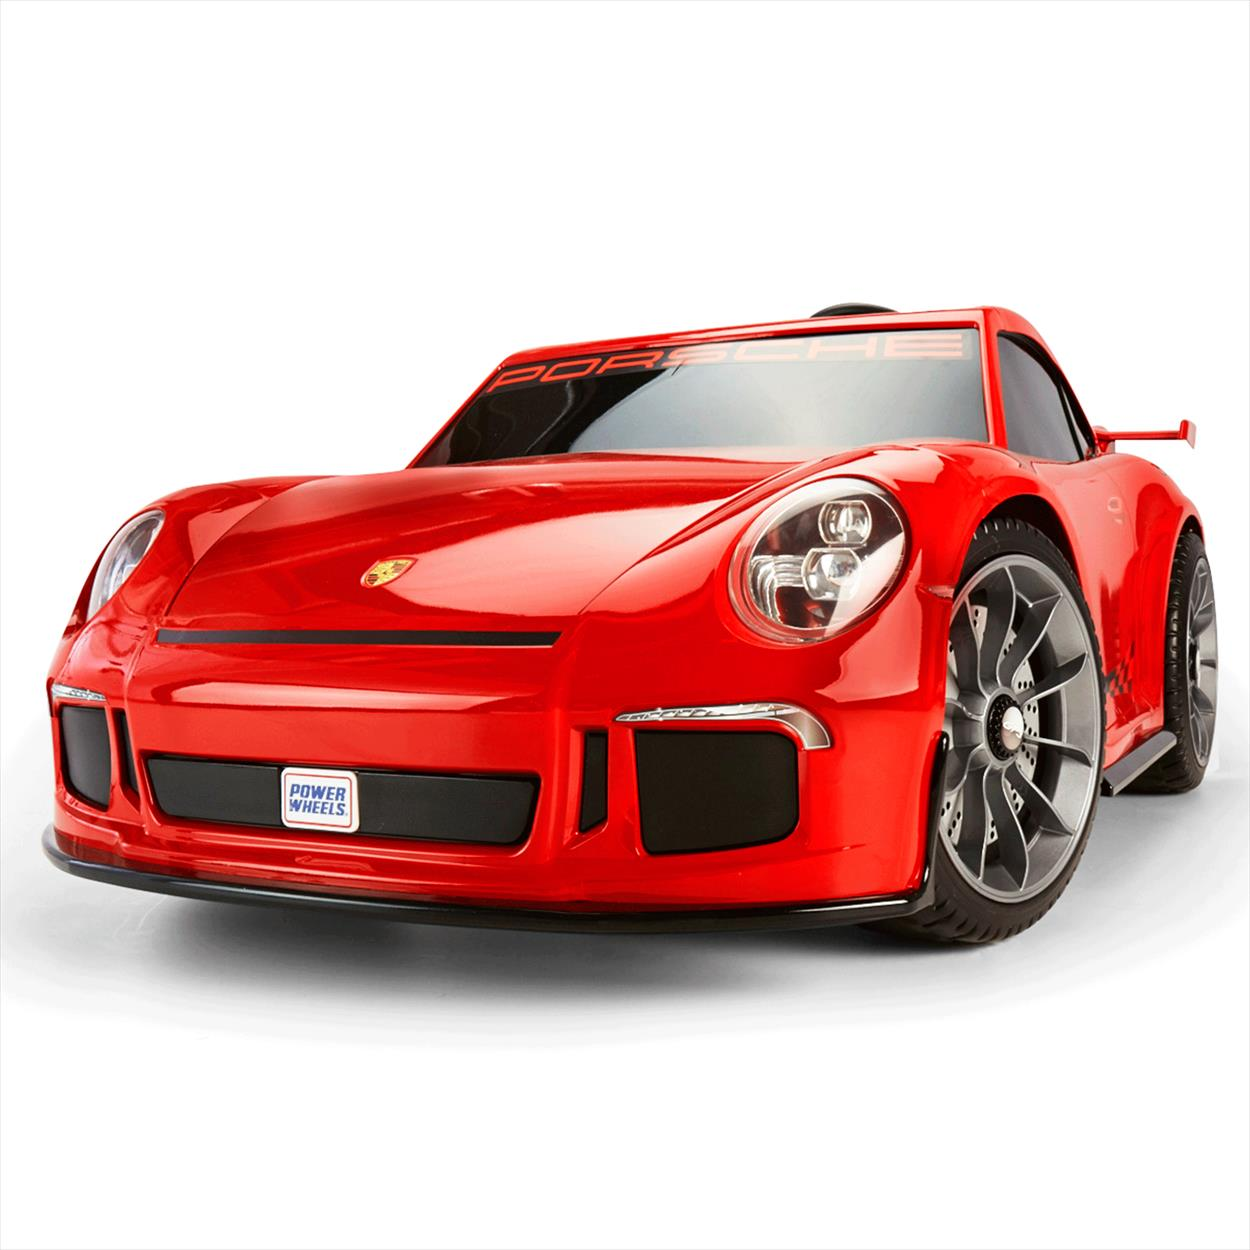 Red Porsche Car: Top 10 Most Ridiculous Power Wheels For Kids » AutoGuide